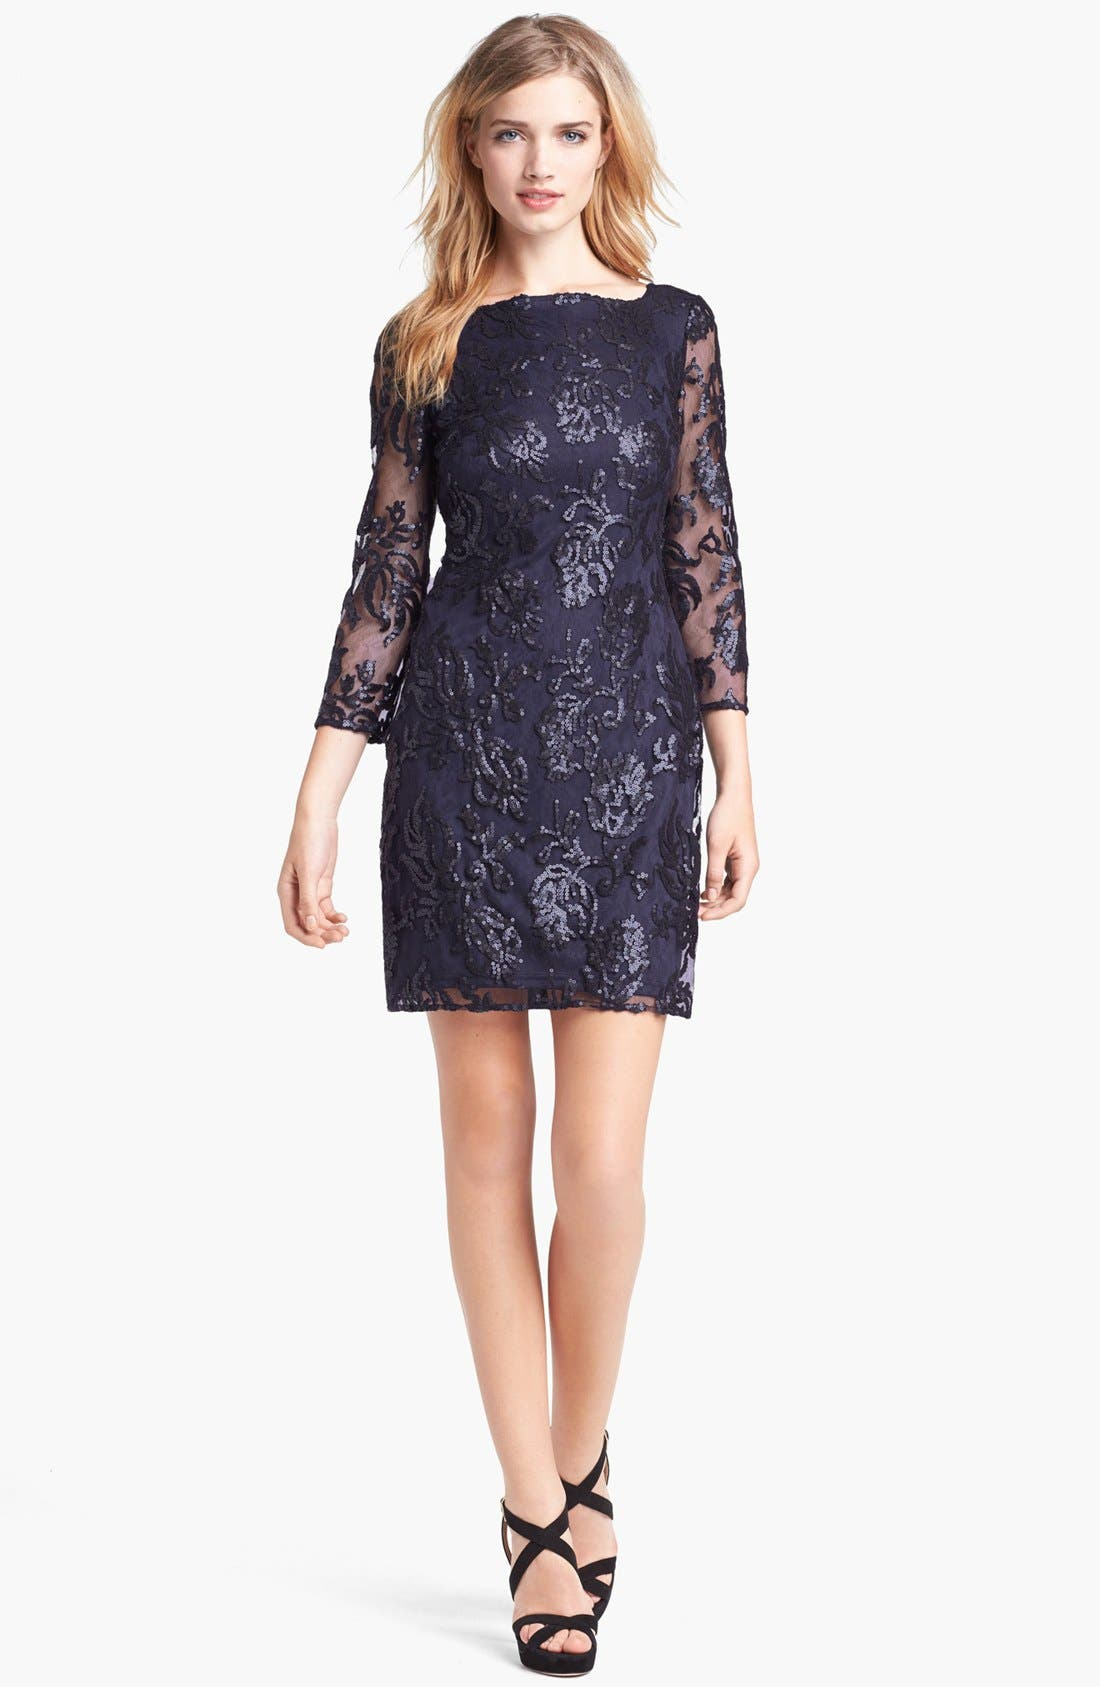 Main Image - Adrianna Papell Sequin Lace Dress (Regular & Petite)